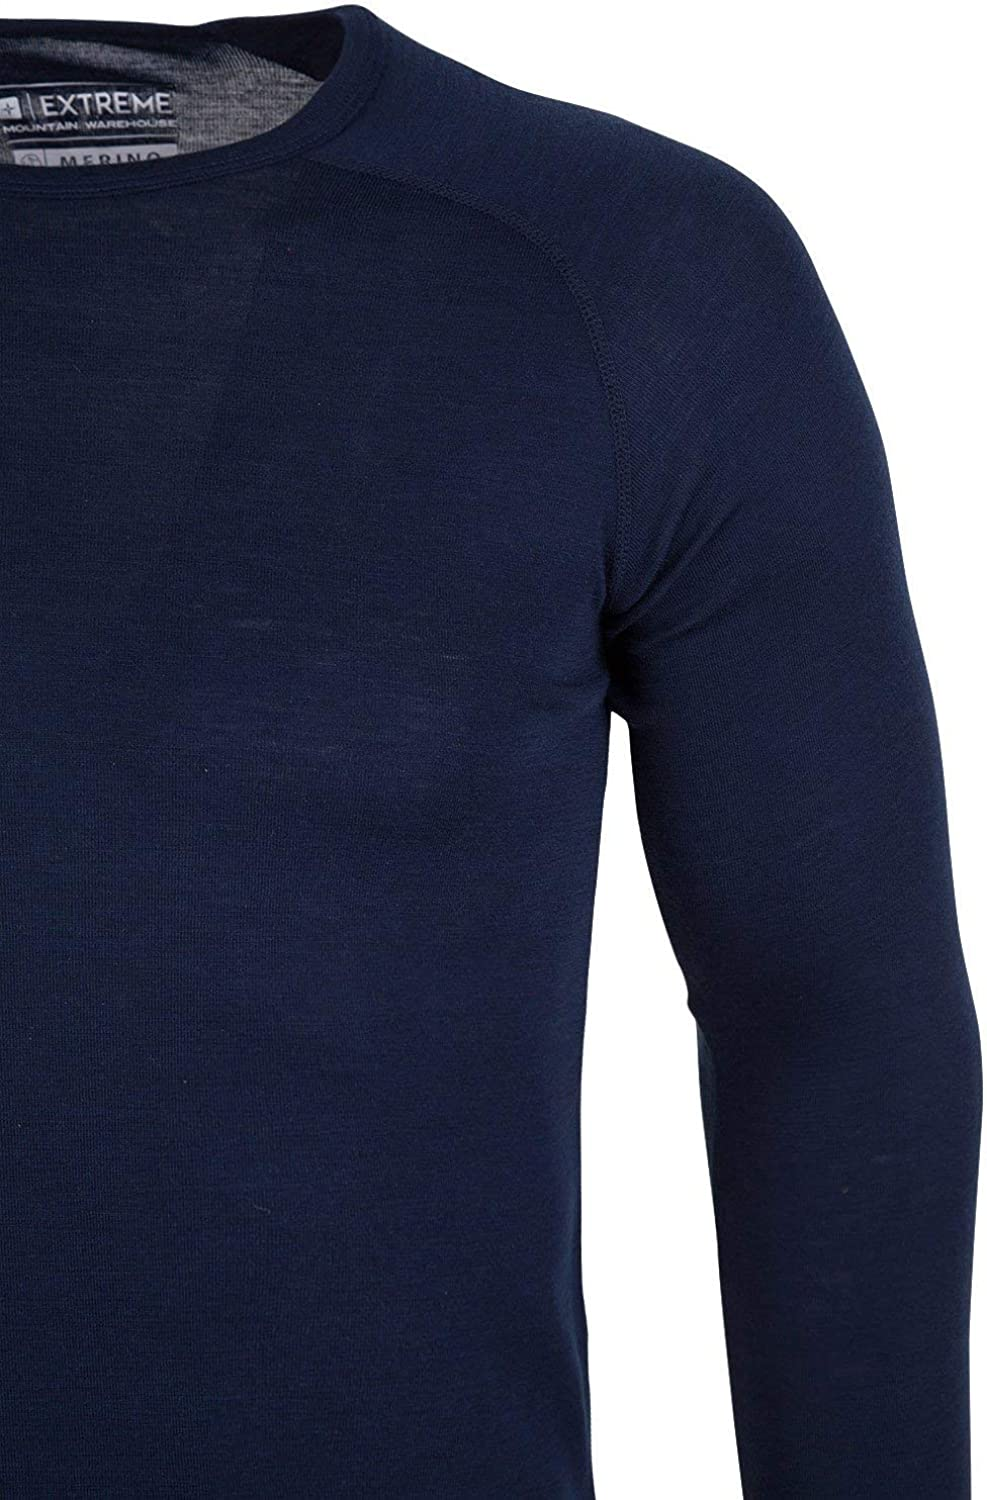 Fast Dry T-Shirt Mountain Warehouse Merino Mens Baselayer Top